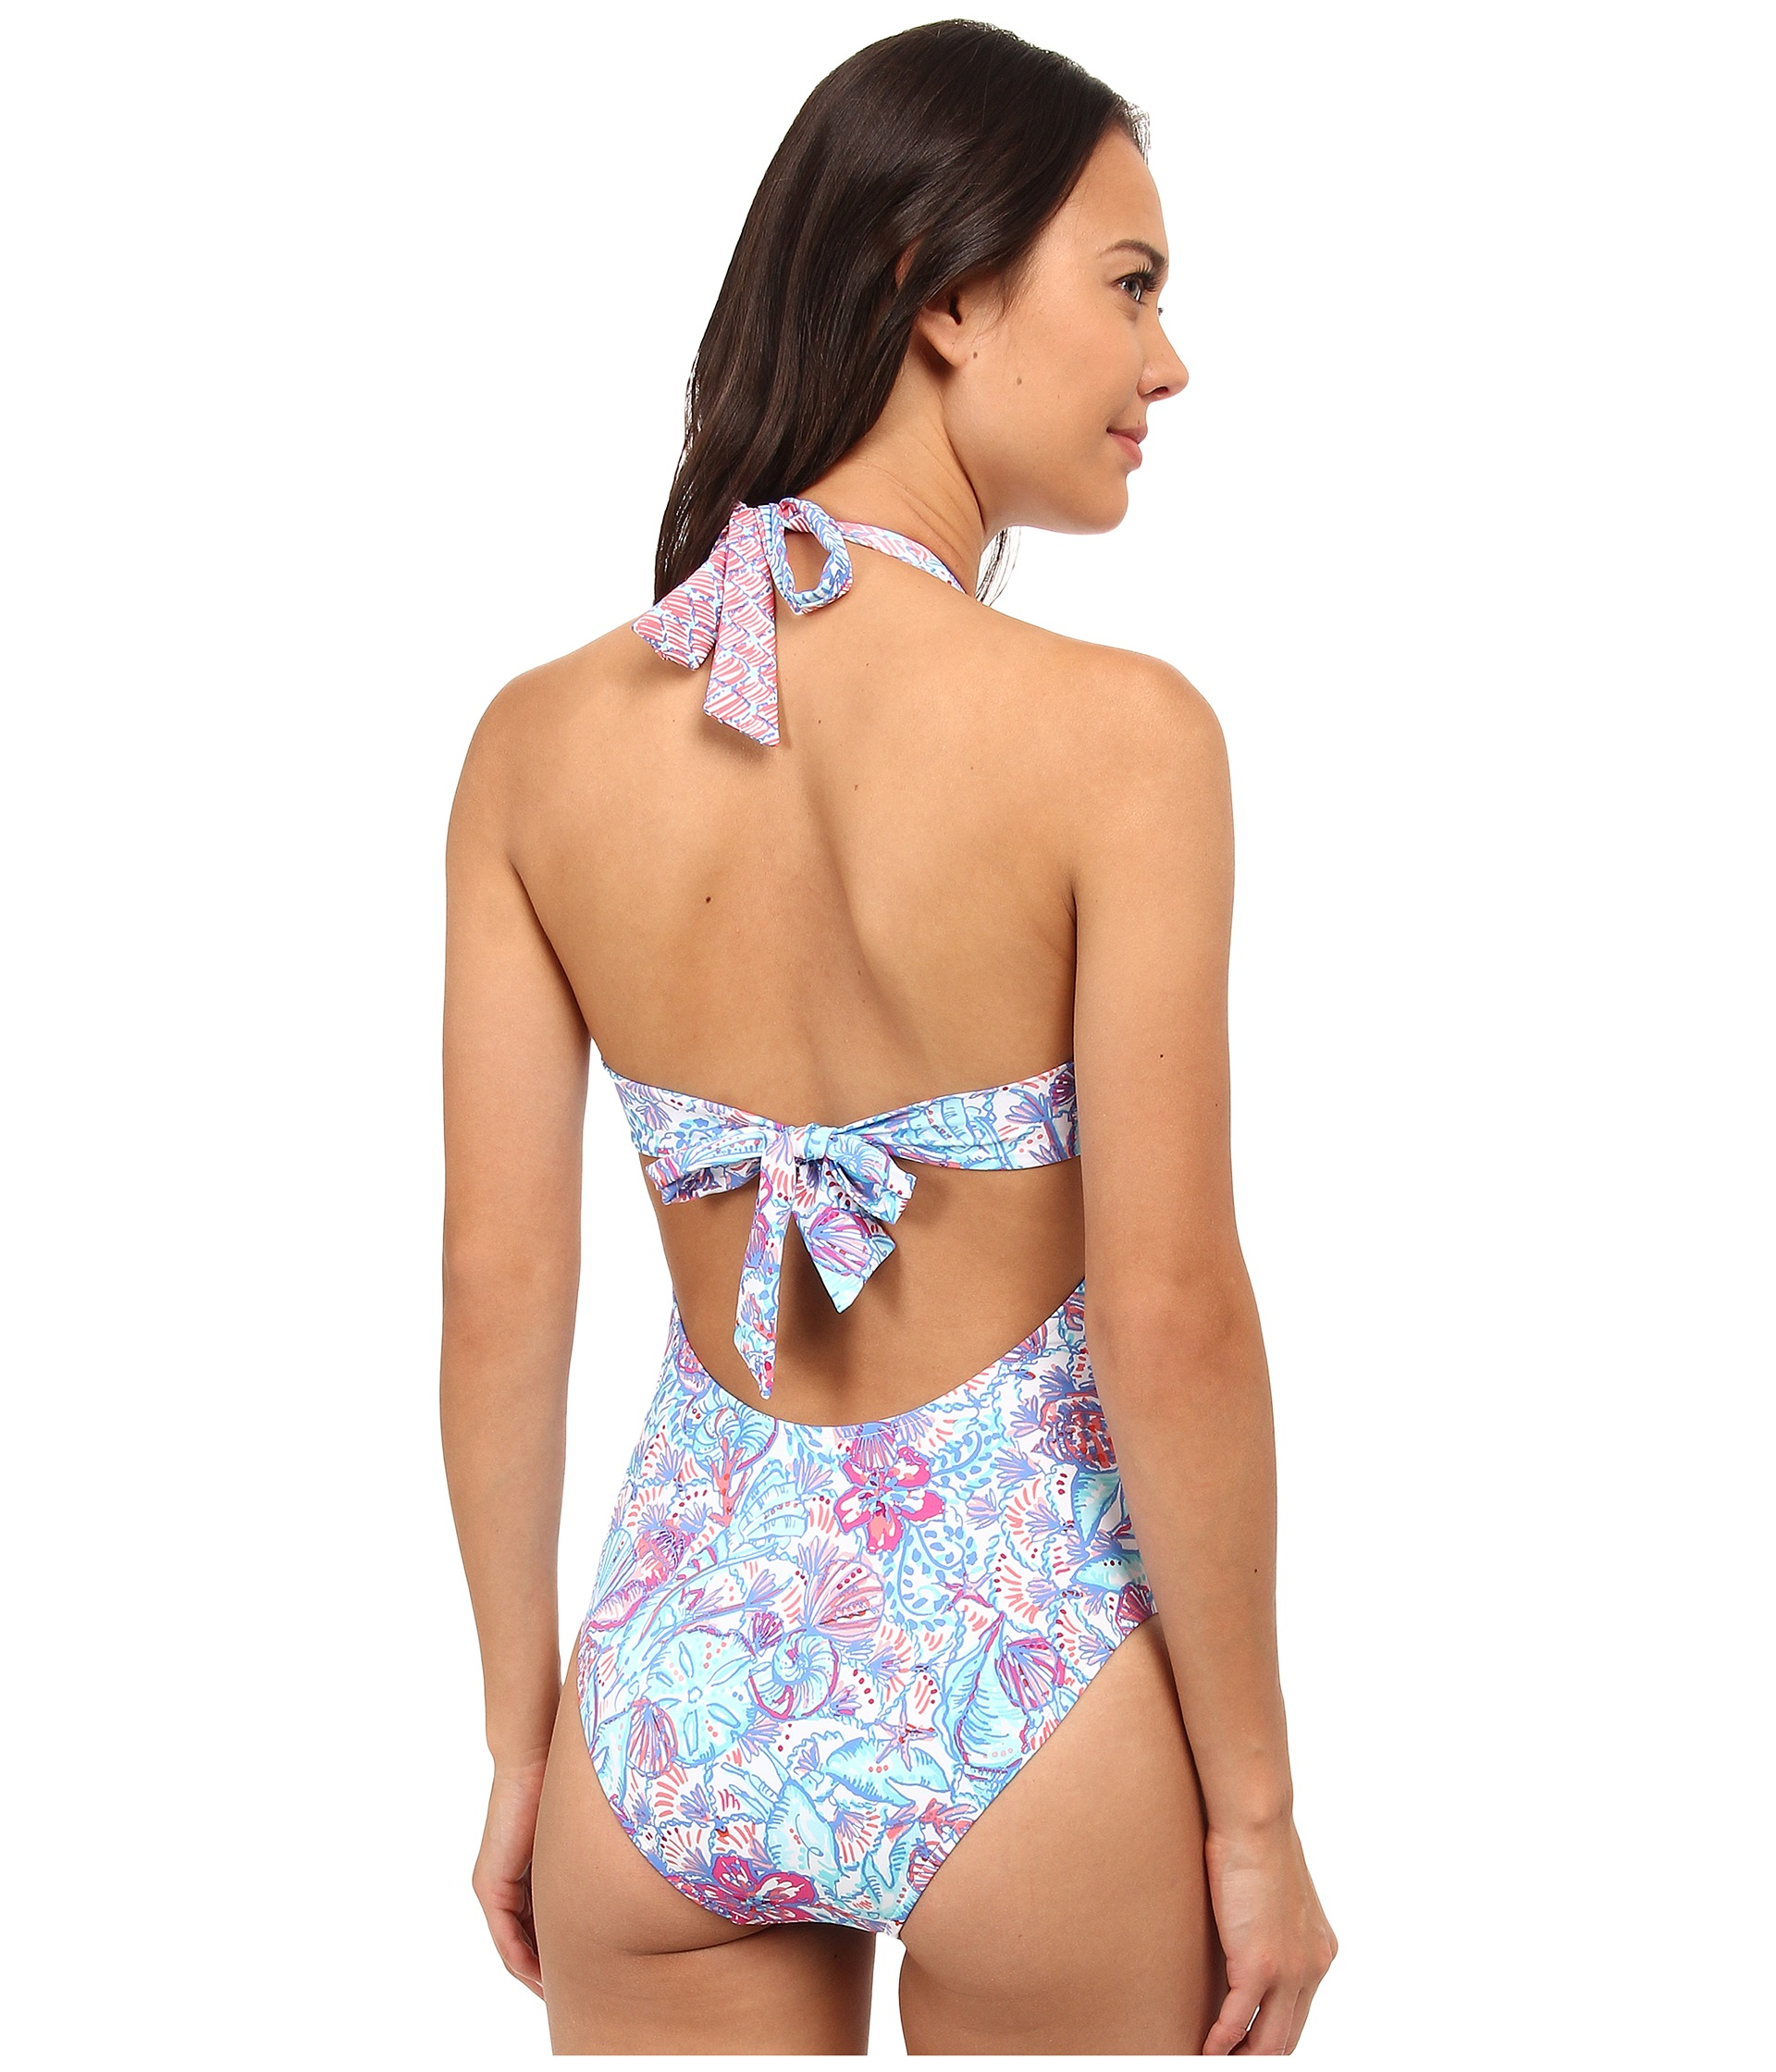 e441fb1feeb42 Lyst - Lilly Pulitzer Seafayer Swimsuit in Blue